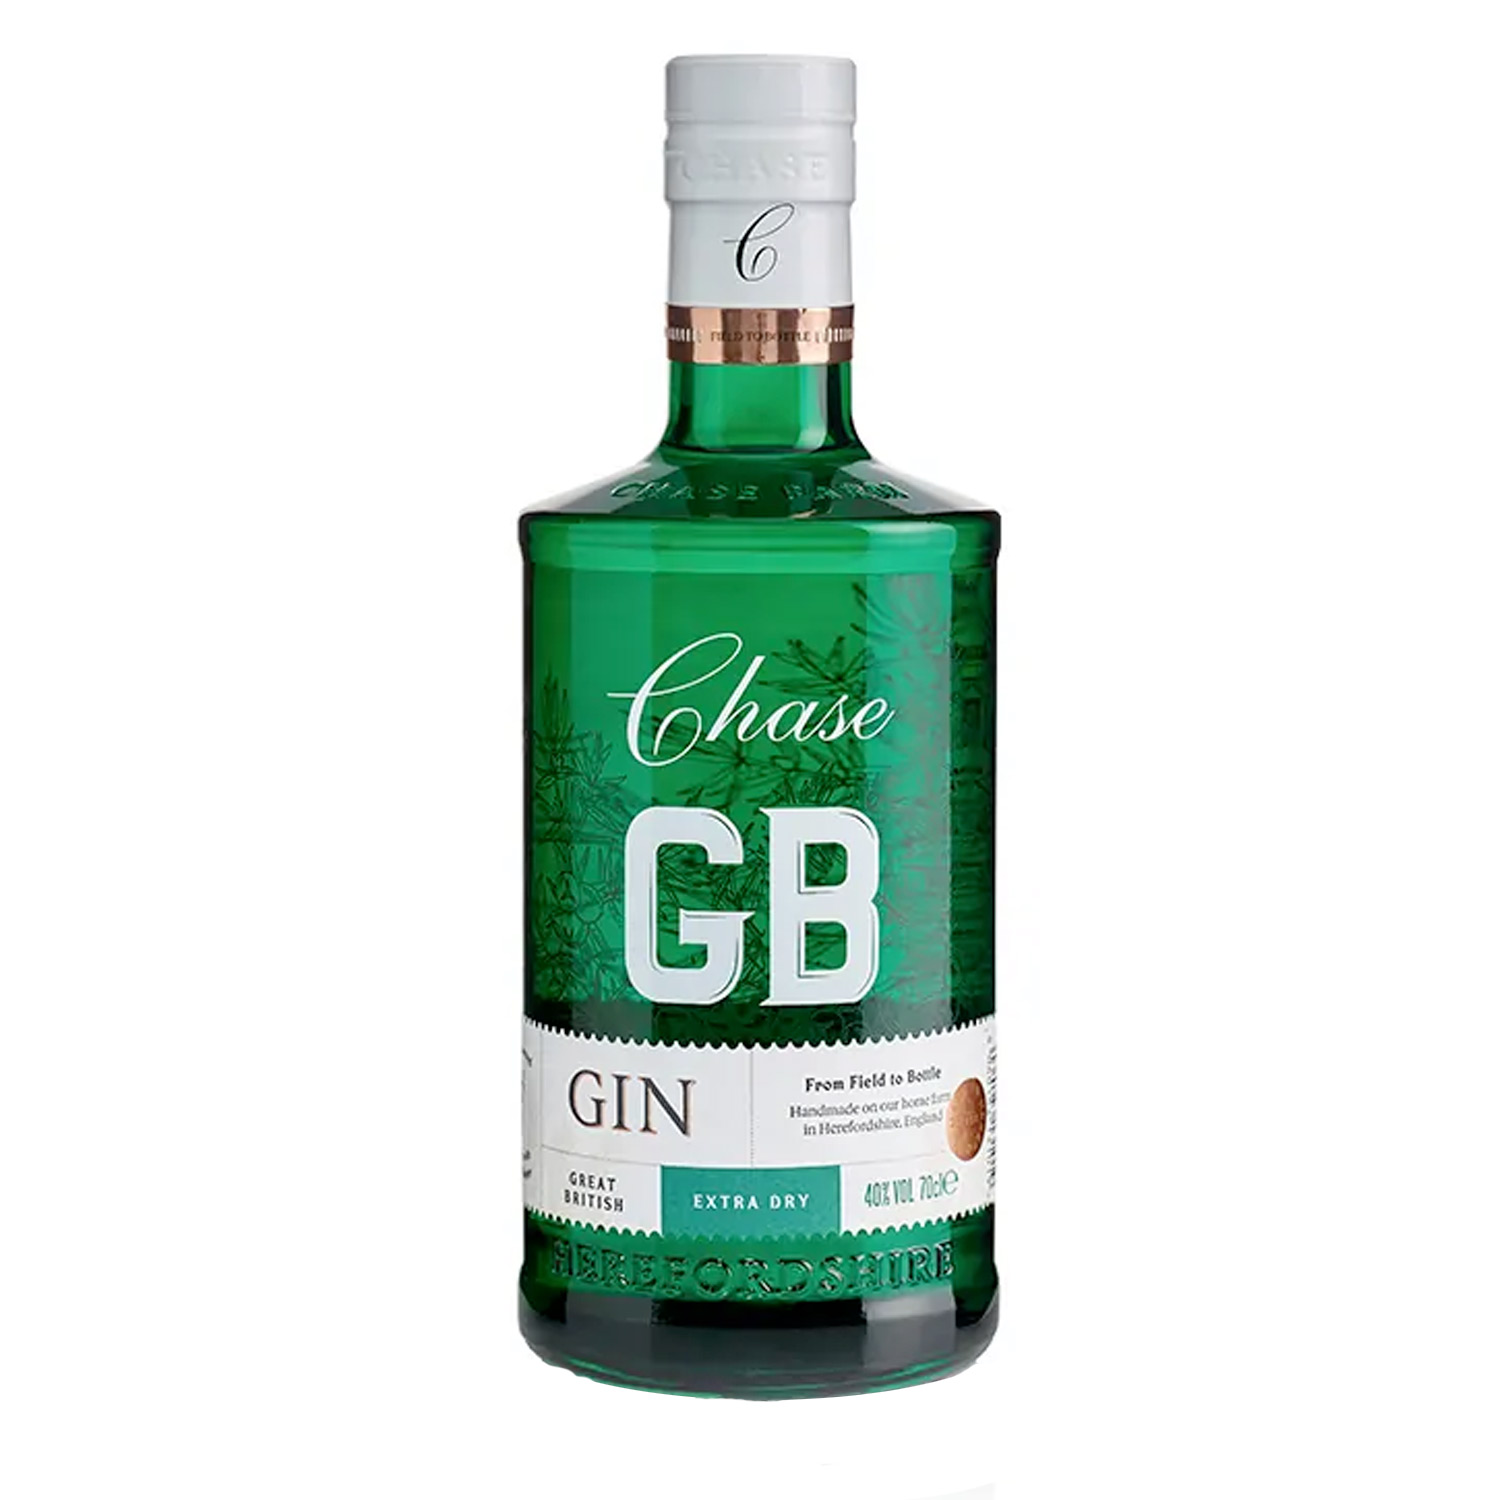 Gin - William Chase - Extra Dry - Angleterre - 40° - 70 cl